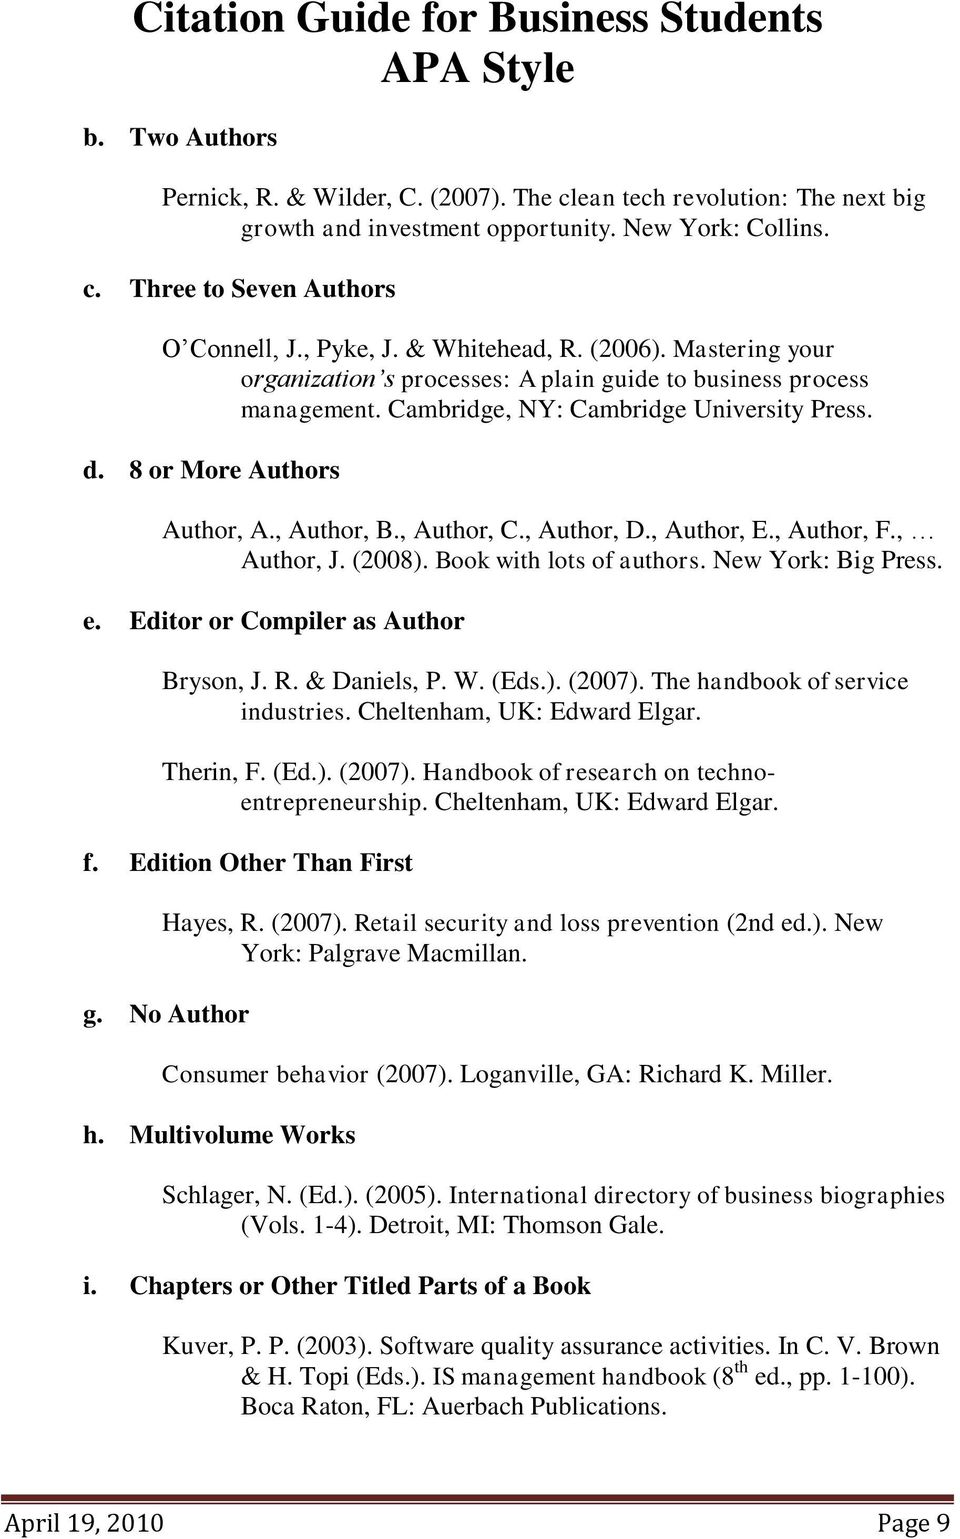 , Author, C., Author, D., Author, E., Author, F., Author, J. (2008). Book with lots of authors. New York: Big Press. e. Editor or Compiler as Author Bryson, J. R. & Daniels, P. W. (Eds.). (2007).